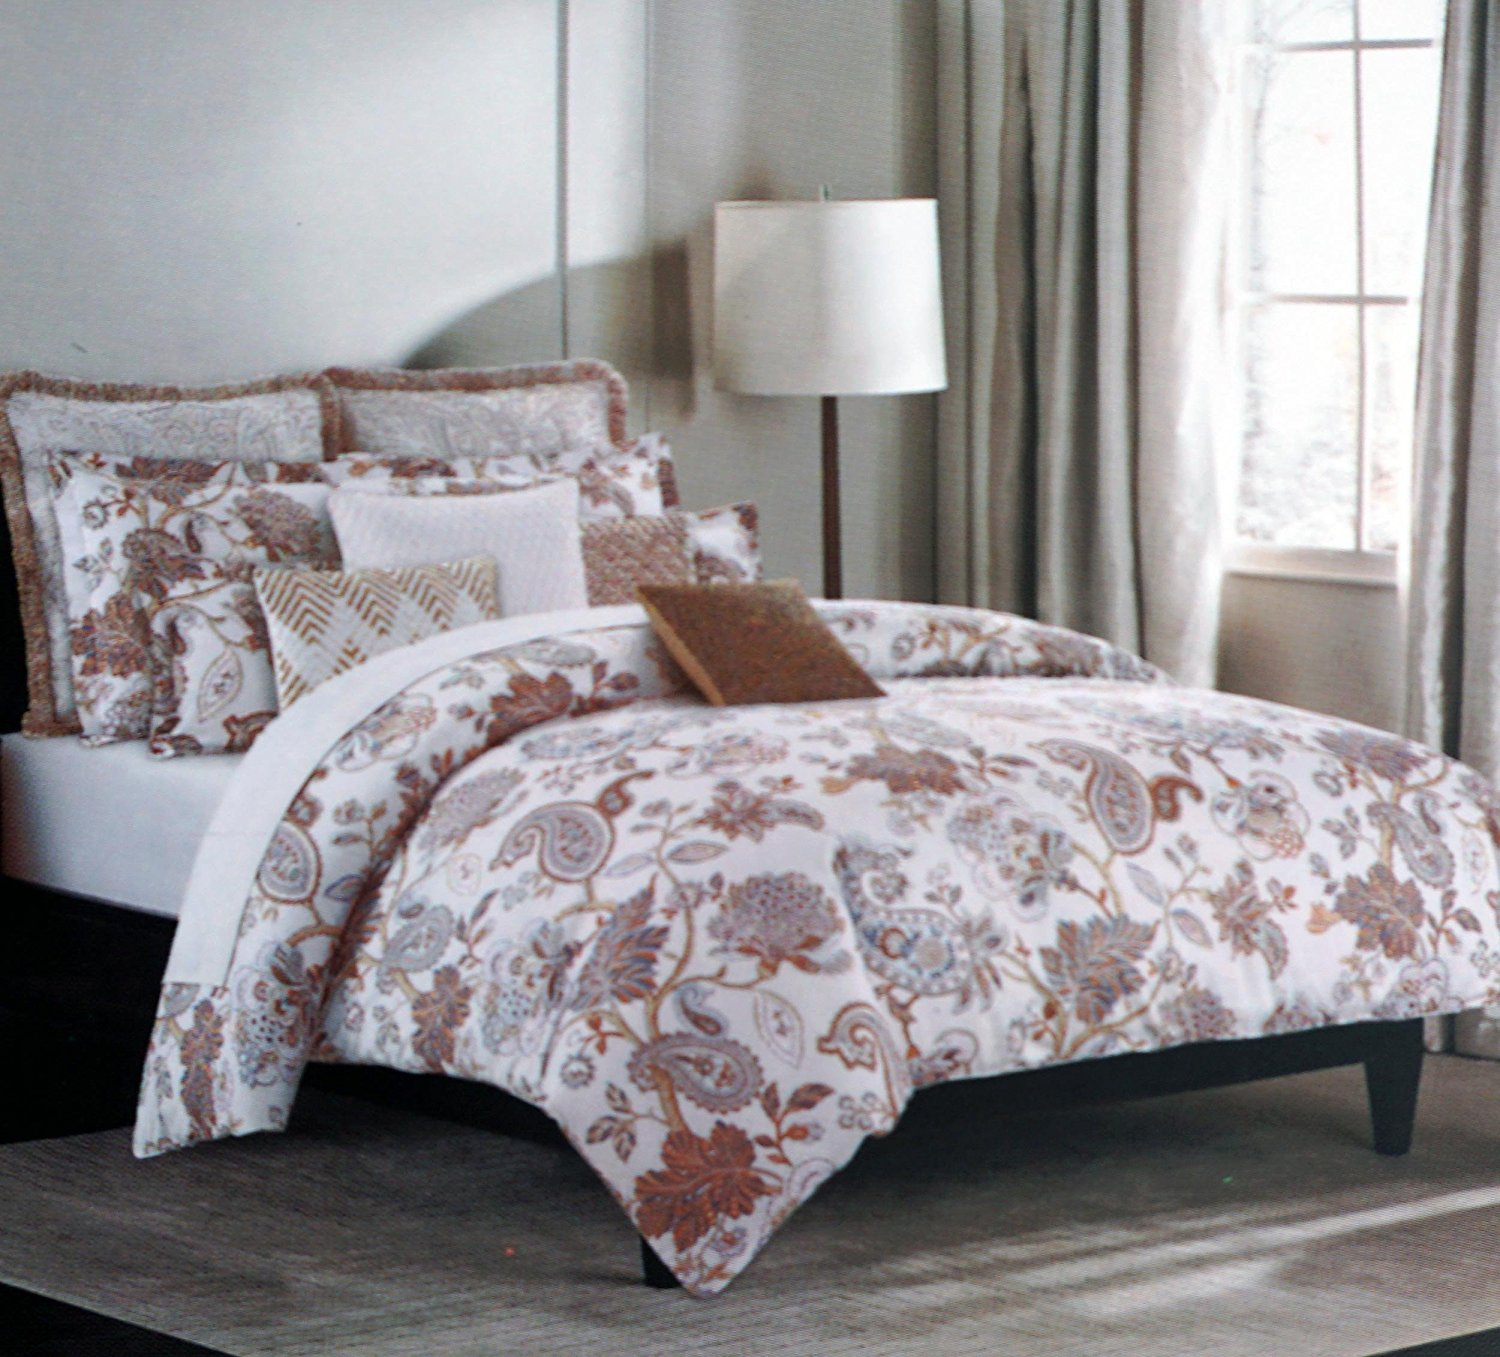 Nicole Miller Bedding 3 Piece Kng Duvet Cover Set Jacobean Fl Paisley Pattern Brown Beige Blue